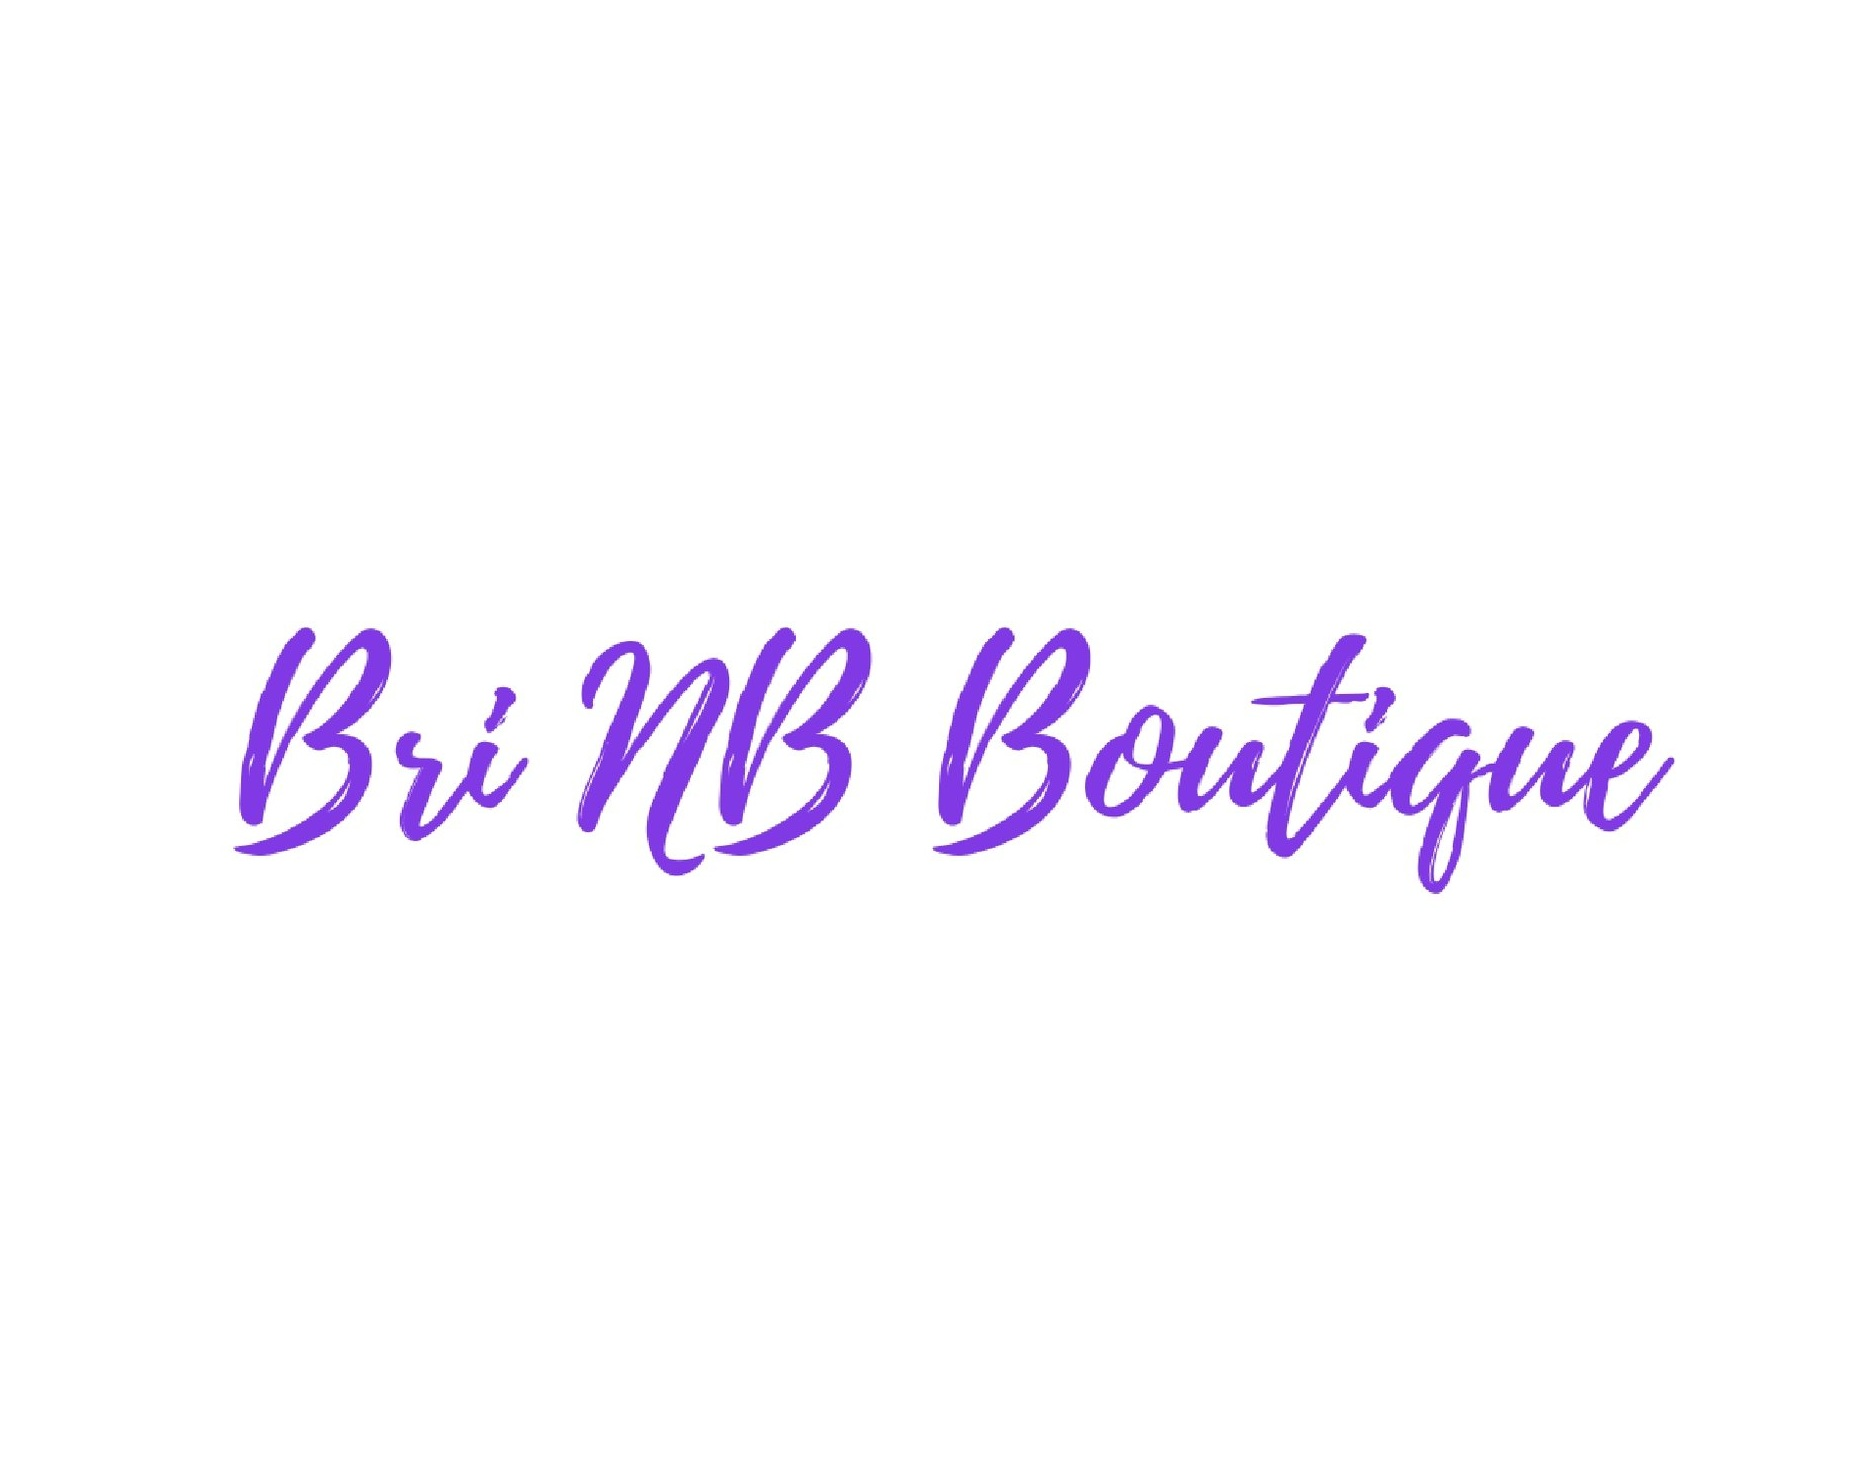 Bri.NB. Boutique   Brianna Bennett grew up in San Diego County and moved to Los Angeles a decade ago. As an active community leader in Los Angeles, she has coordinated small business workshops and forums which inspired the creation of her own small business, Bri.NB.Boutique.  Bri.NB. Boutique, founded in 2017, is a jewelry and accessory boutique with the goal of creating bright aesthetics to uplift the mood and outlook of the lives of her customers